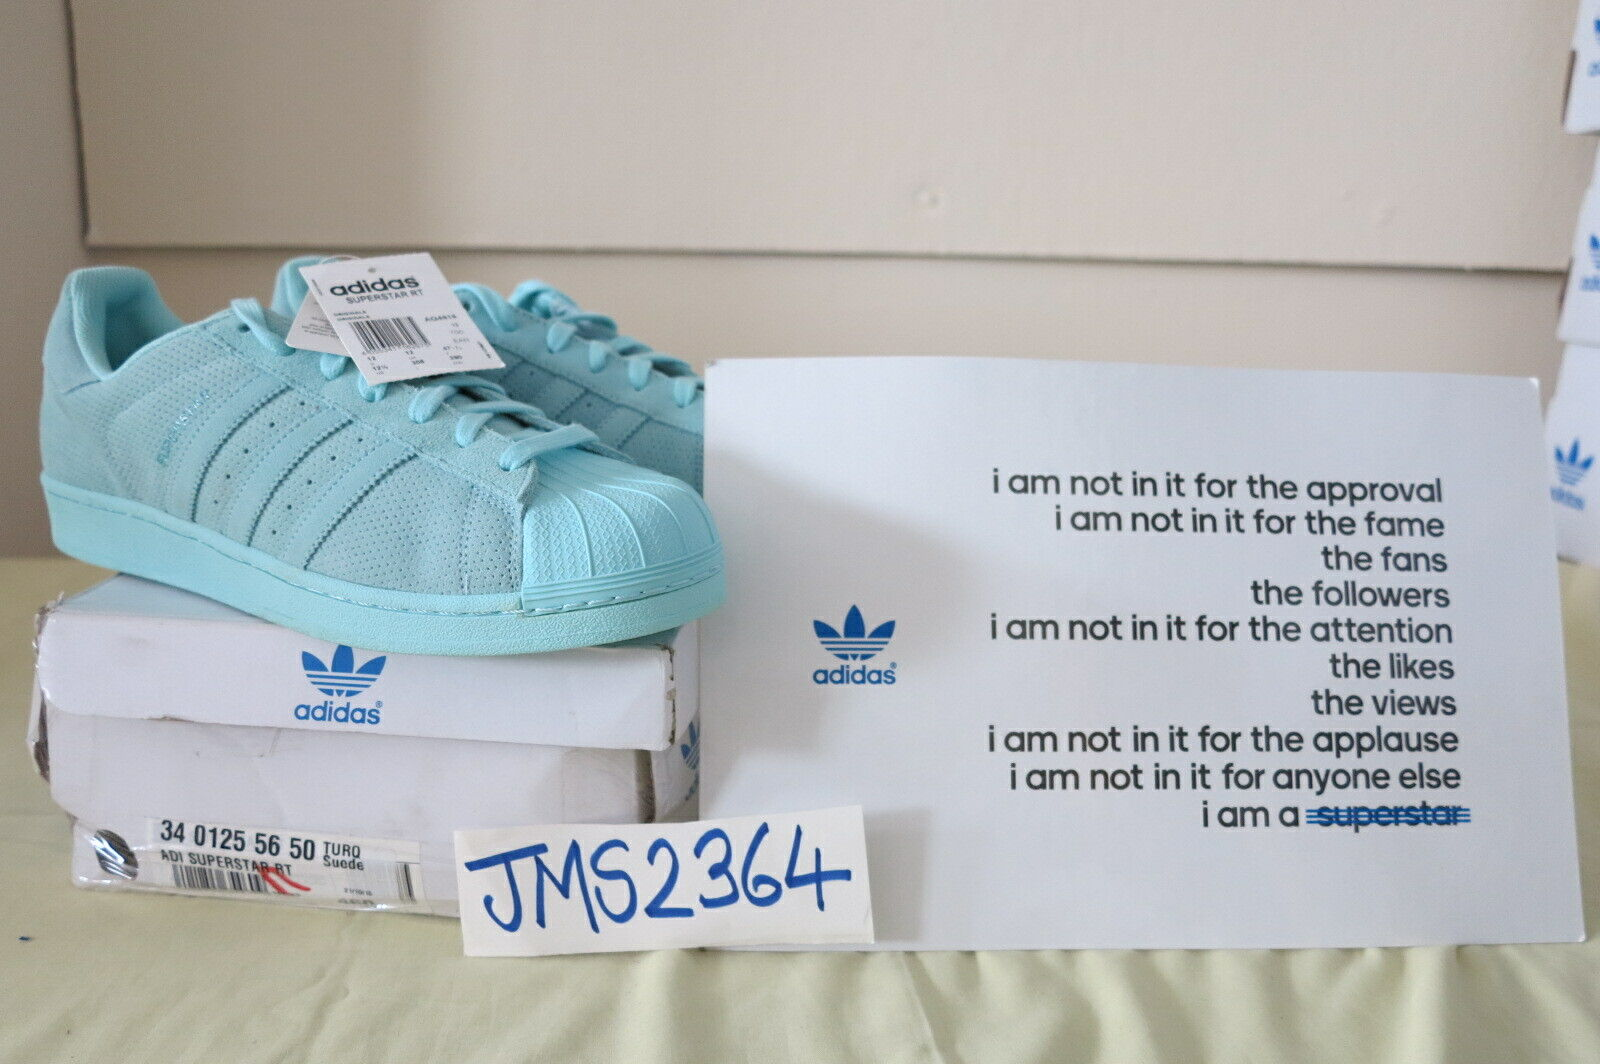 ADIDAS ORIGINALS SUPERSTAR SUPERFarbe RT TURQ Grün Blau SUEDE UK12 US12.5 RARE